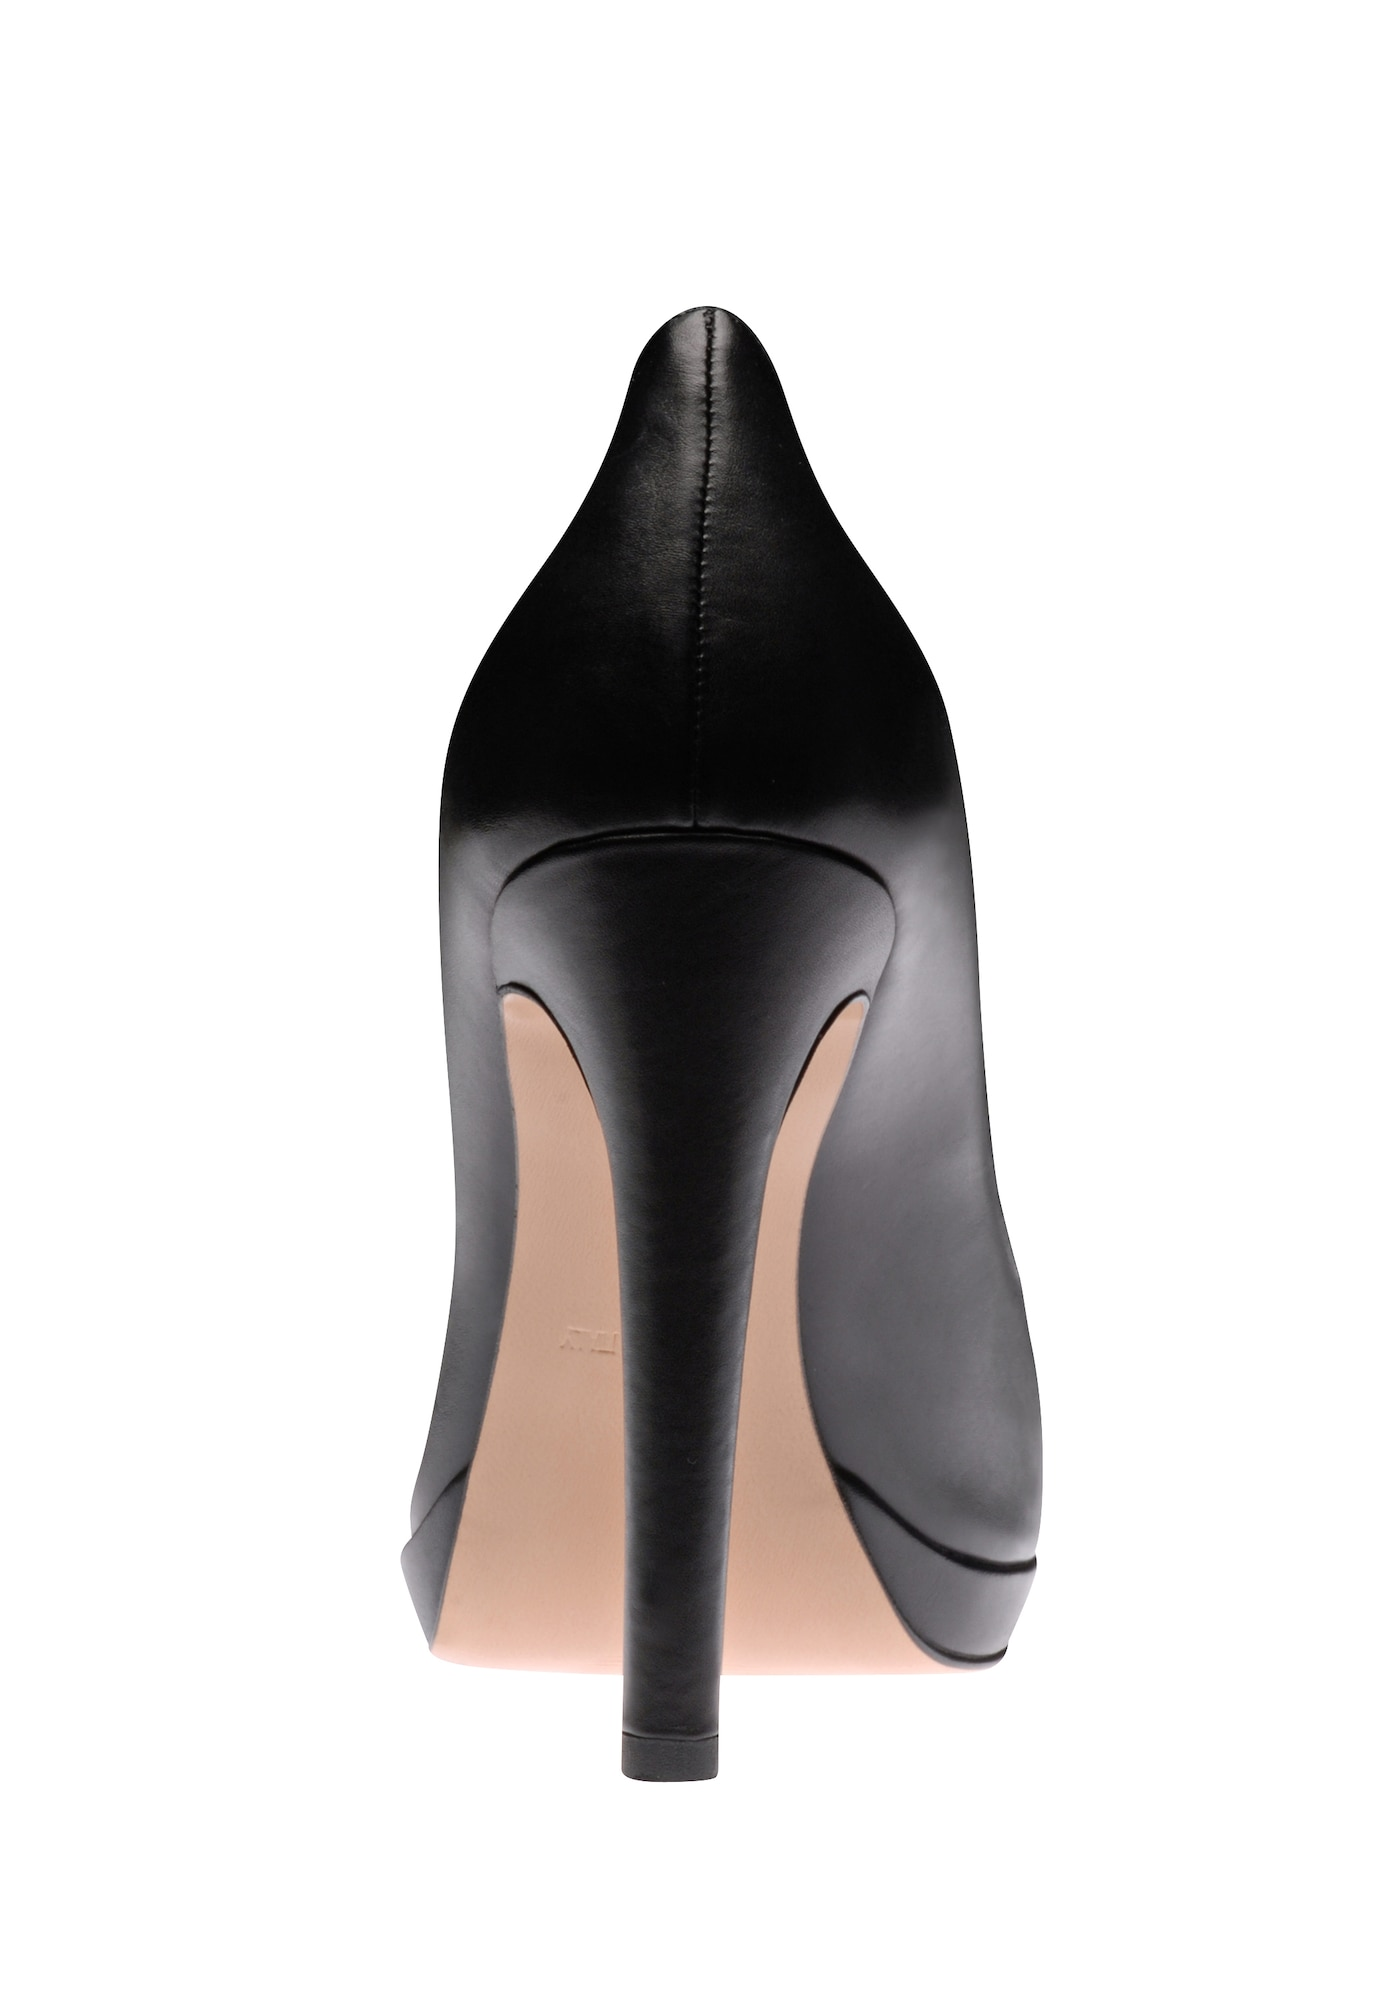 EVITA, Dames Pumps, zwart